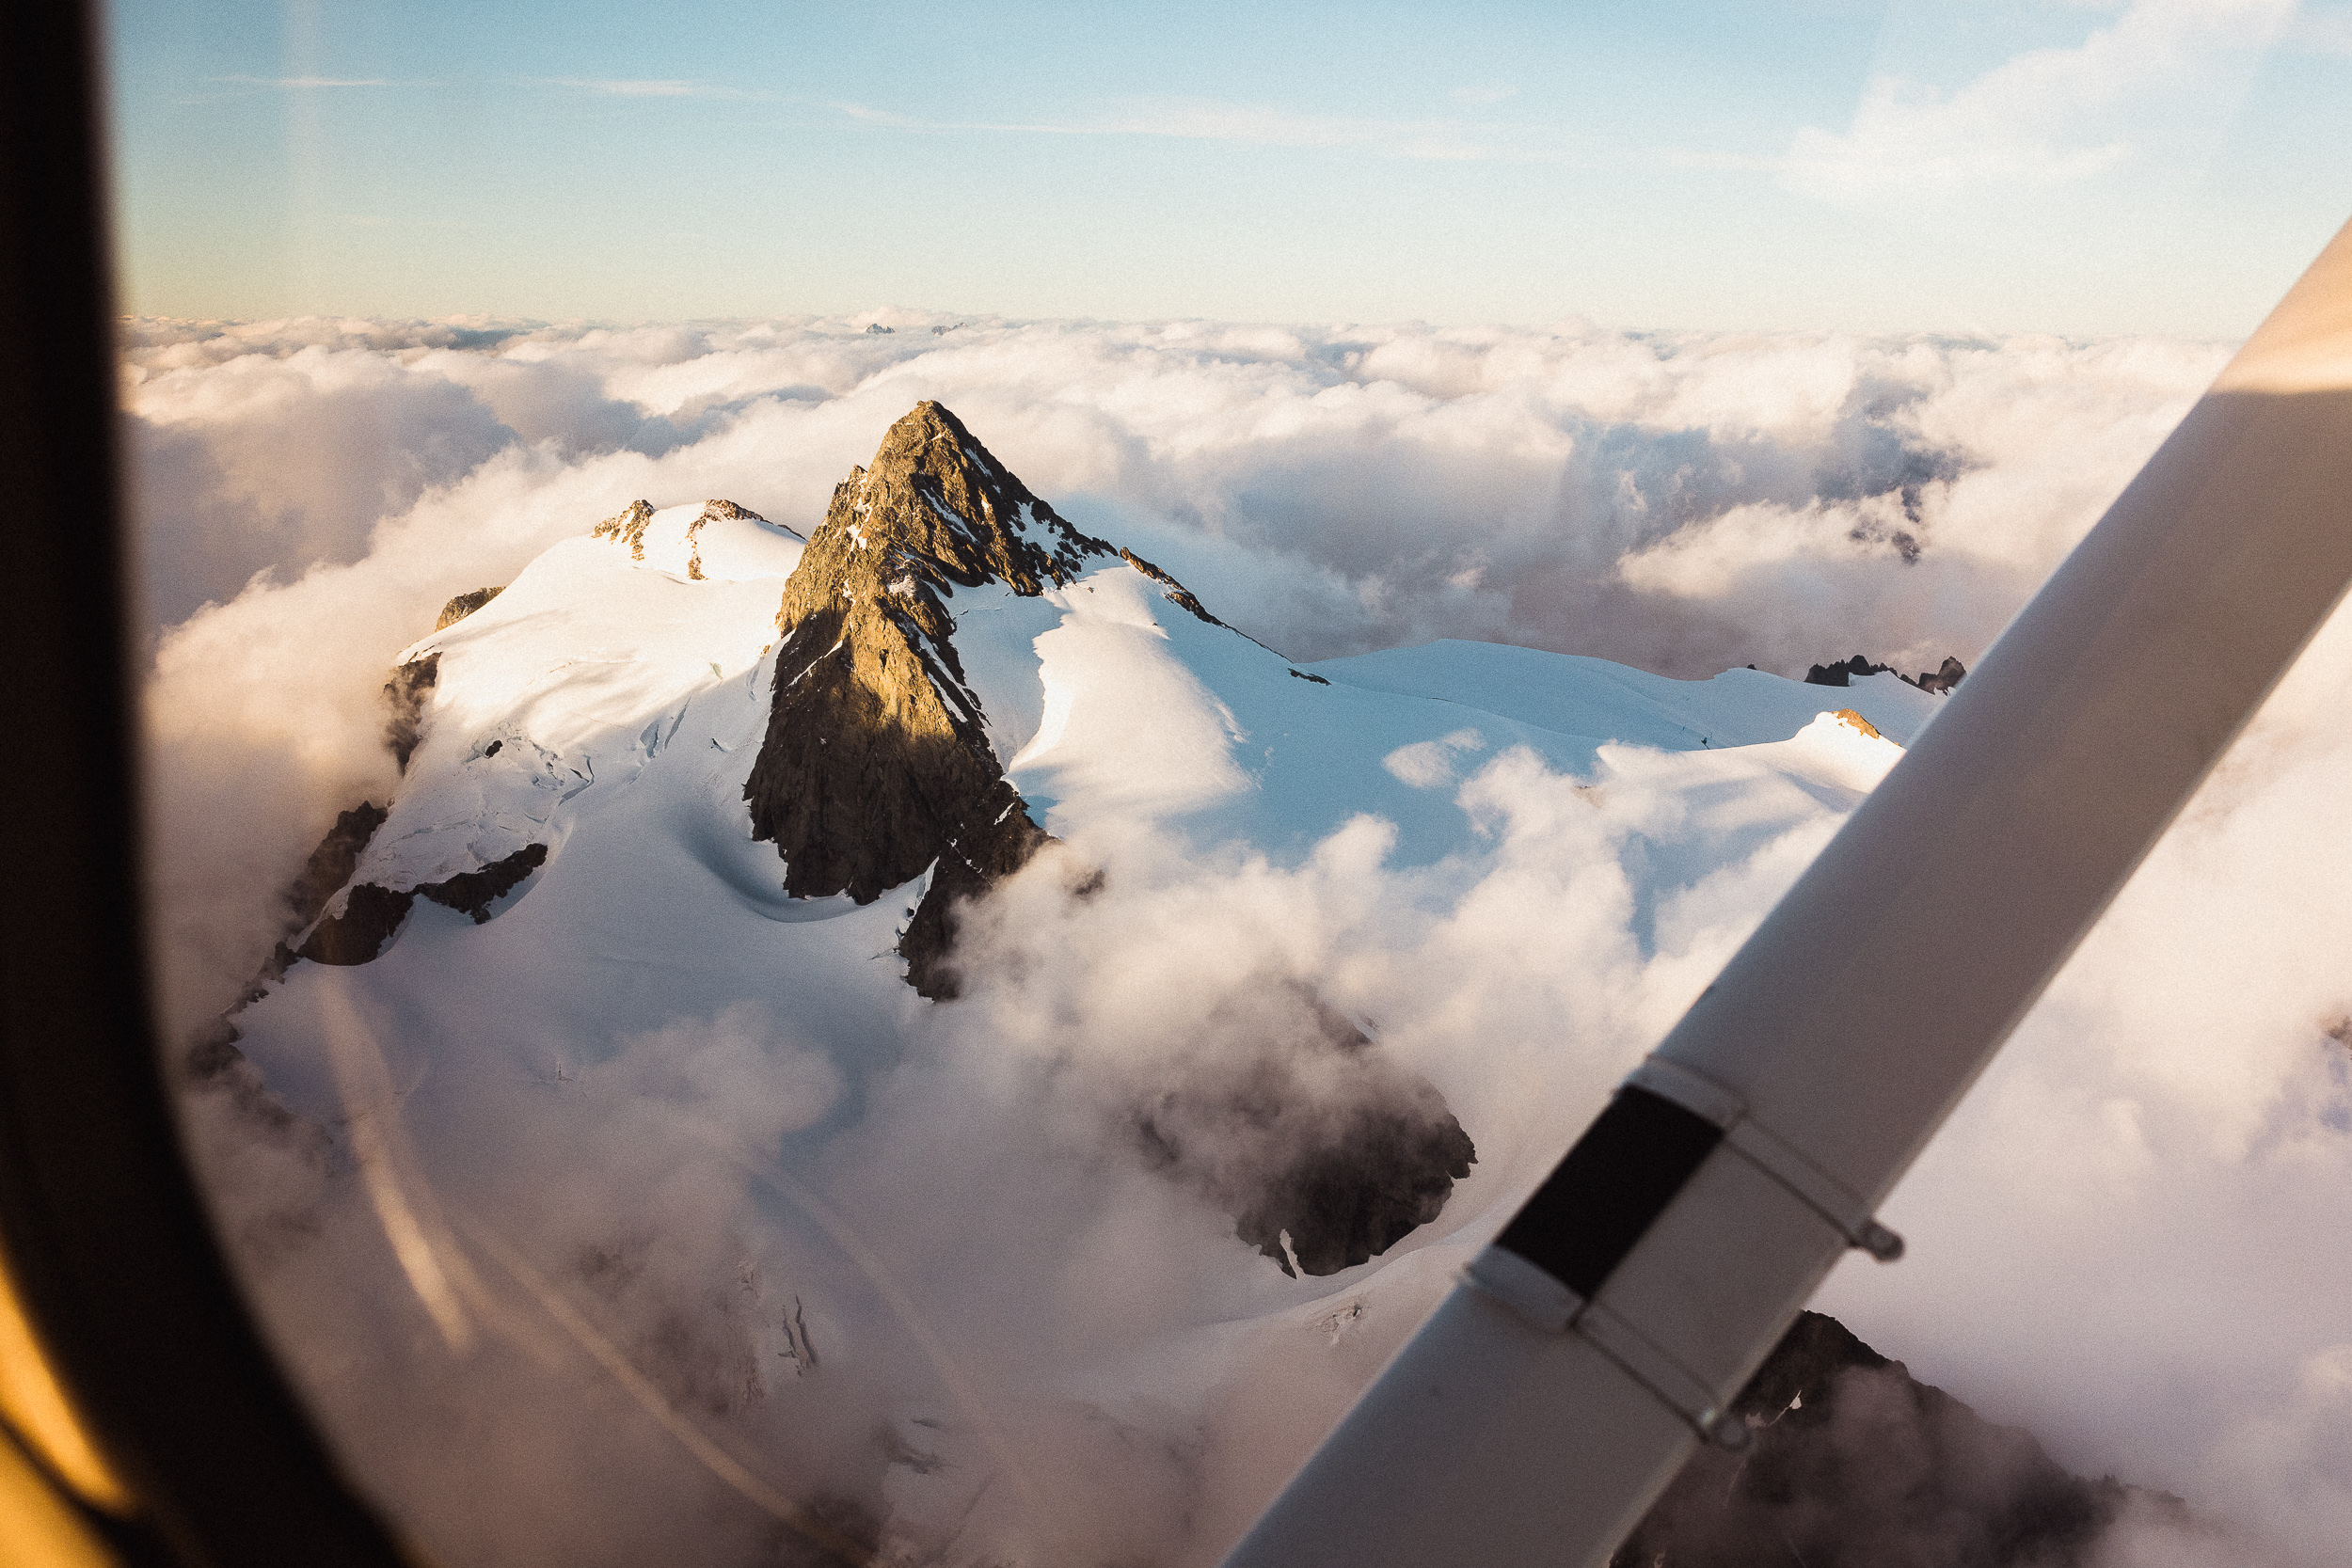 In Pursuit of Perspective - Climbing mountains involves you in a micro aspect; flying over them unlocks the macro perspective.